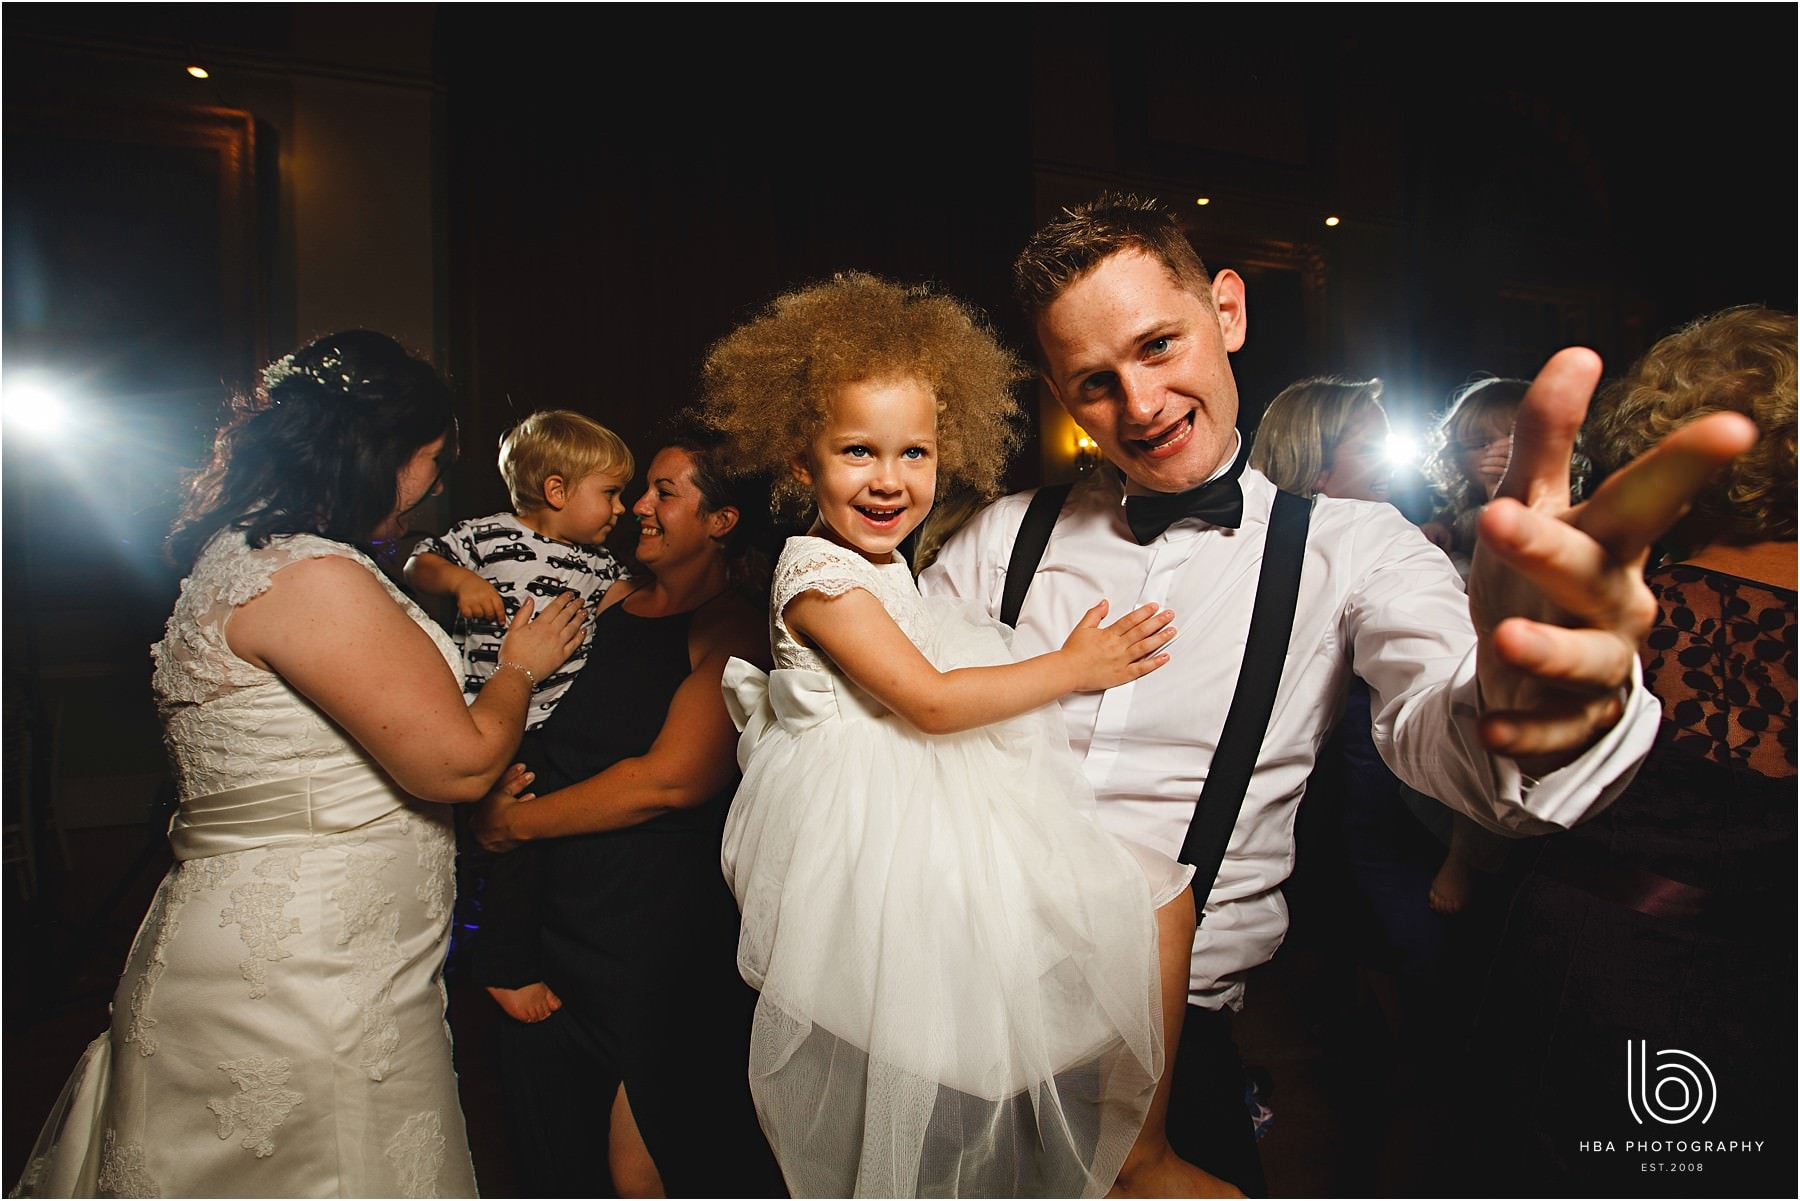 the groom with braces holding a little girl on the dance floor